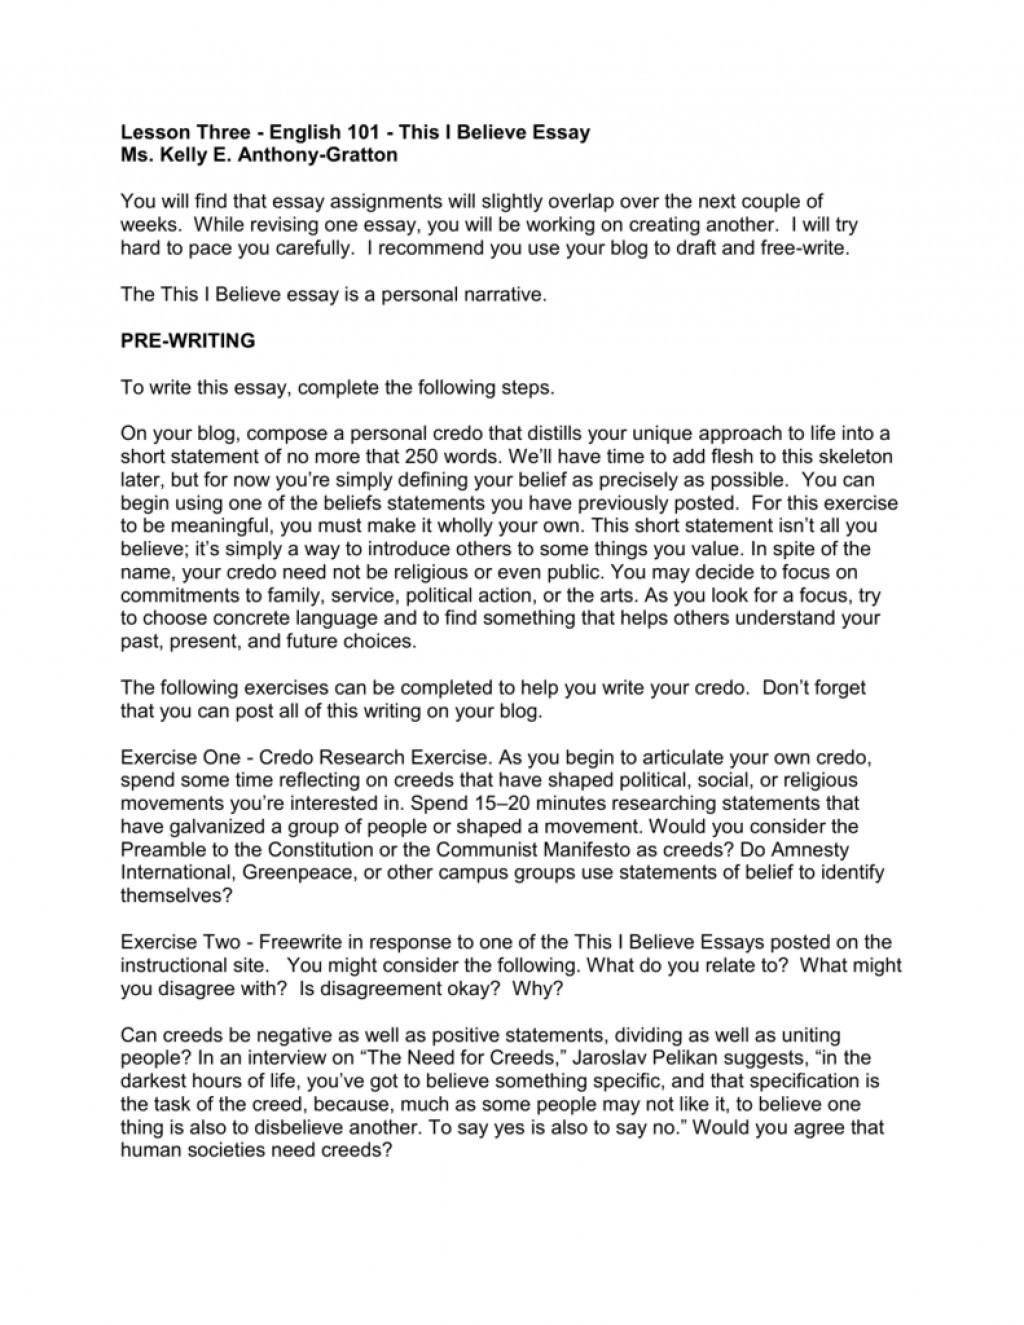 007 Essay Example This I Believe Examples 006667793 2 Stupendous Npr College Large